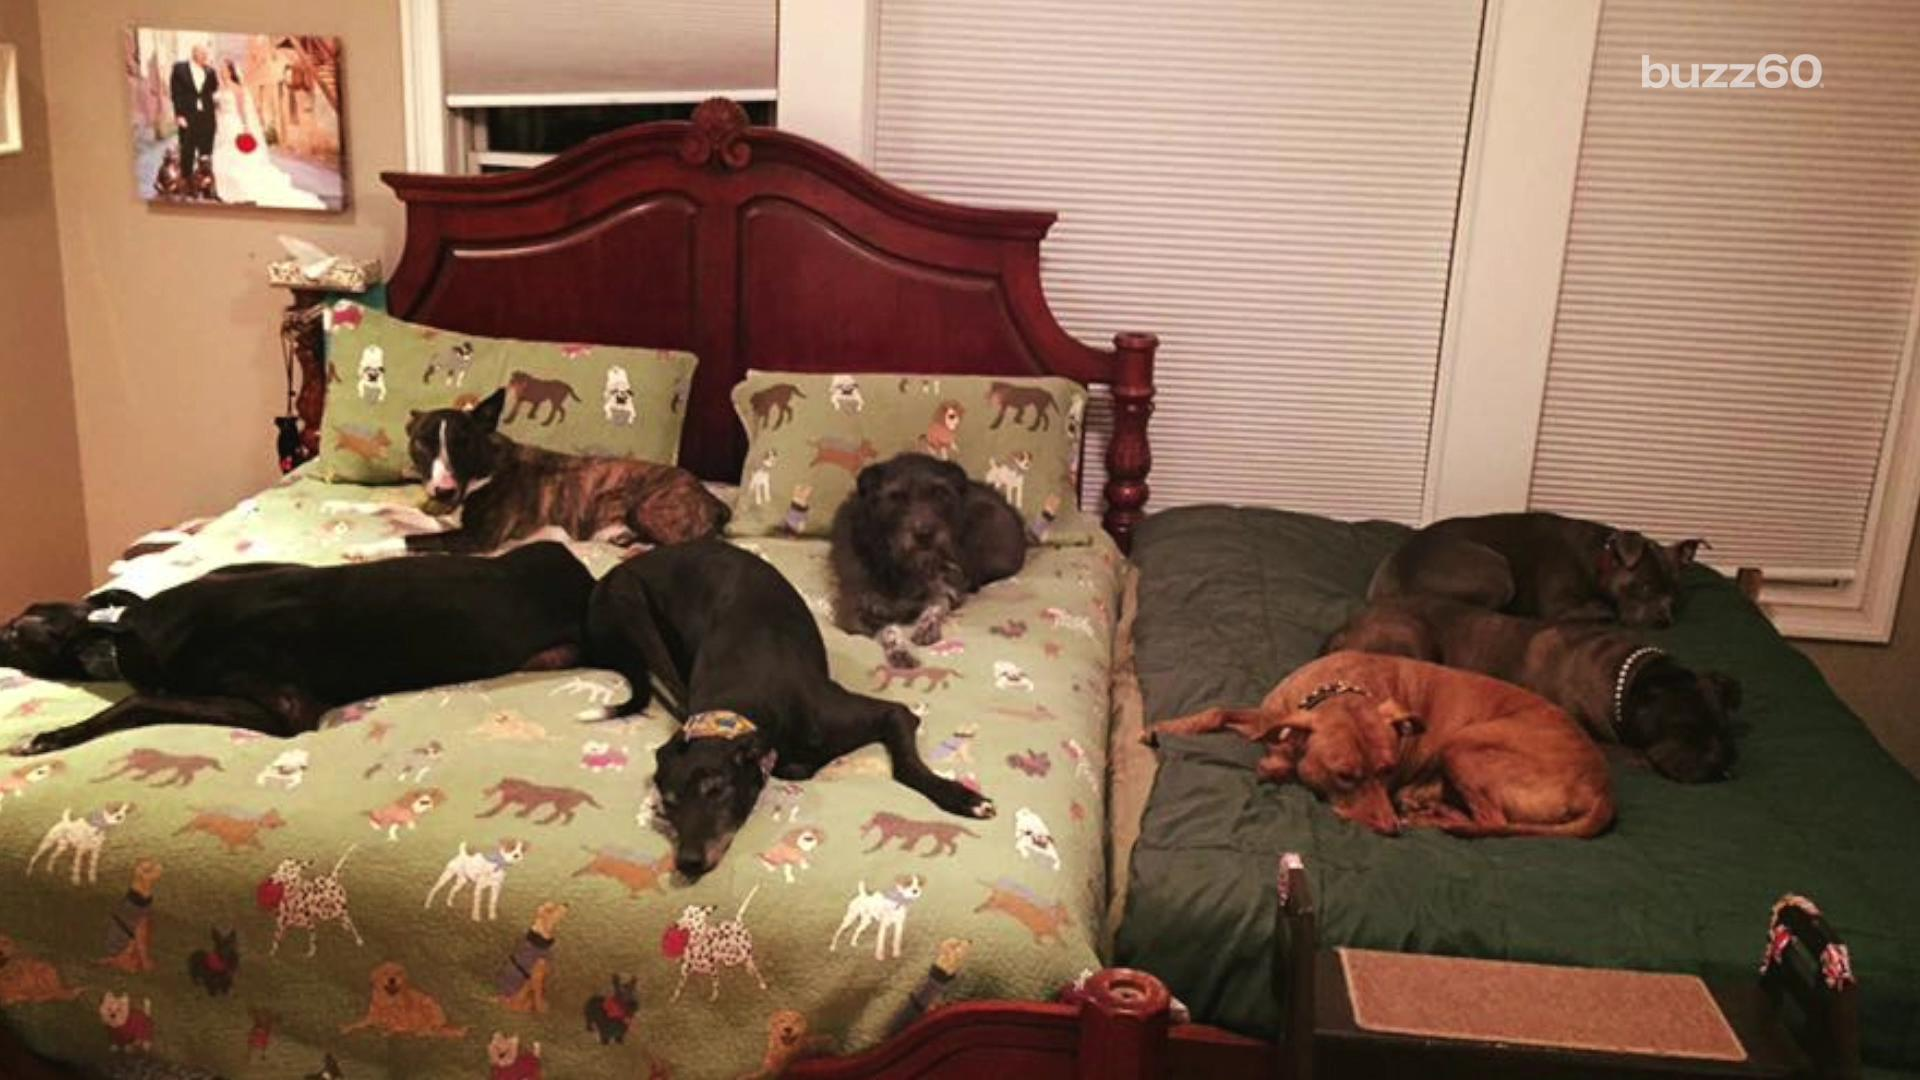 Couple Needs a Second Bed for All Their Adopted Dogs